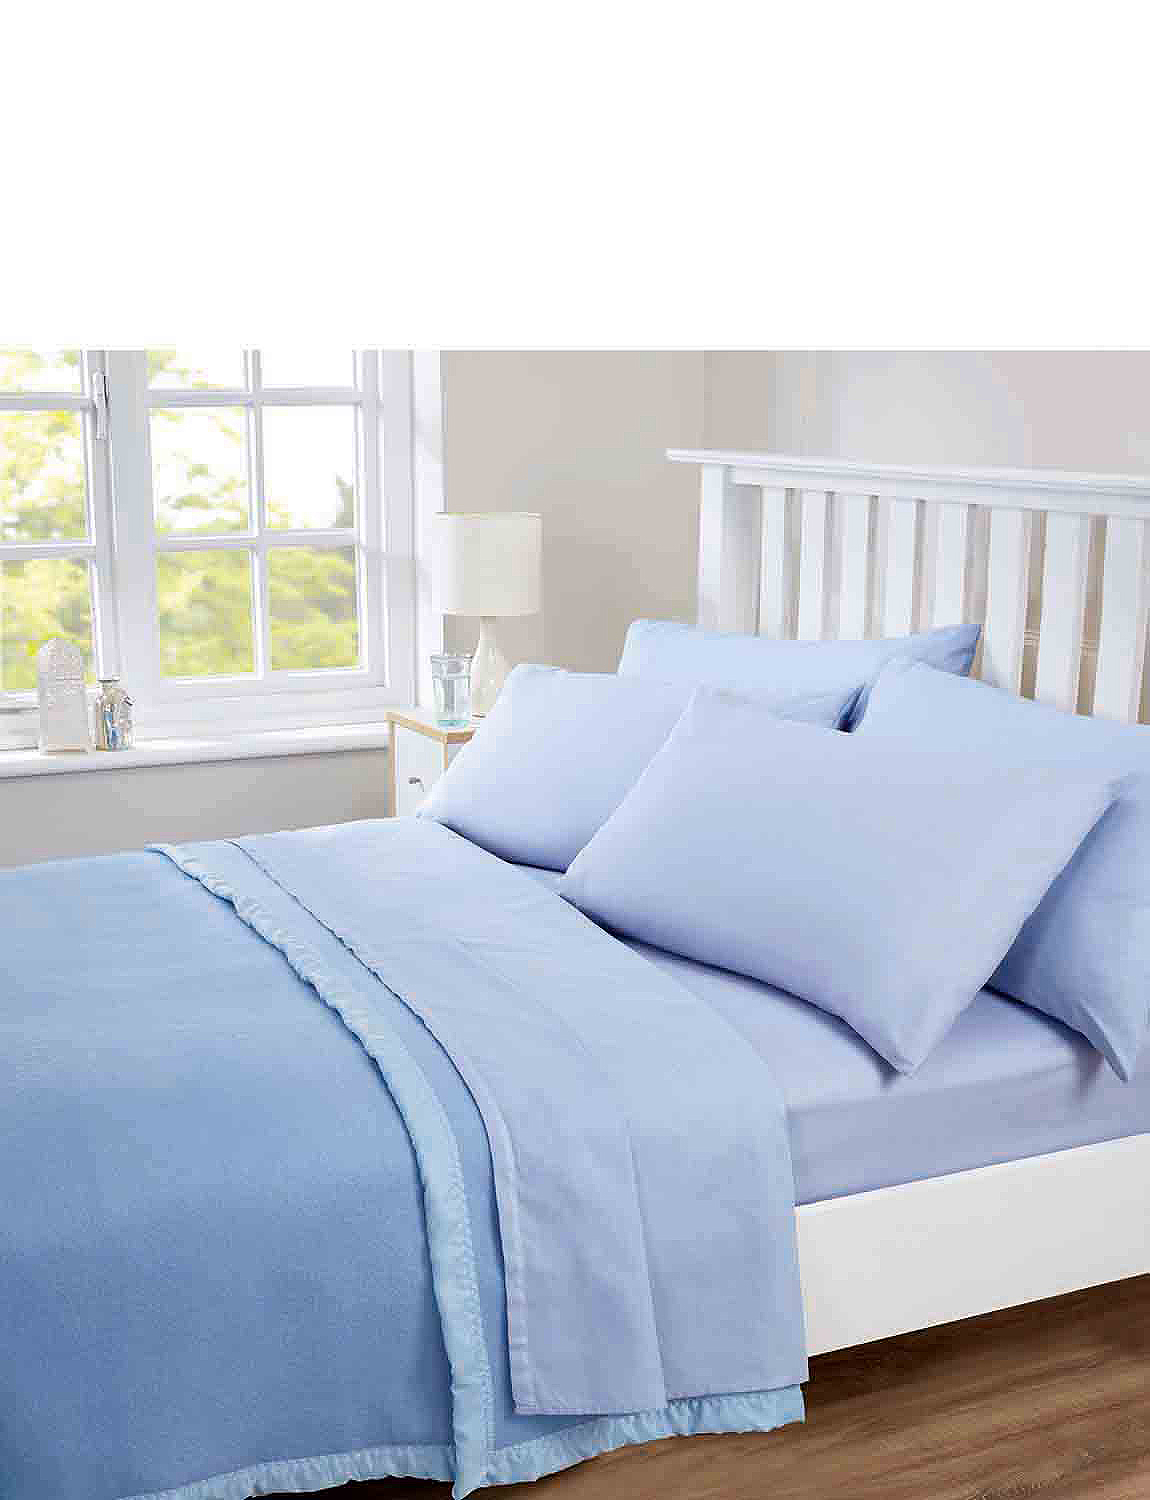 CLEARANCE WHITE KING SIZE QUILT COVER/&FITTED SHEET SET 50//50 EASYCARE POLYCOTON